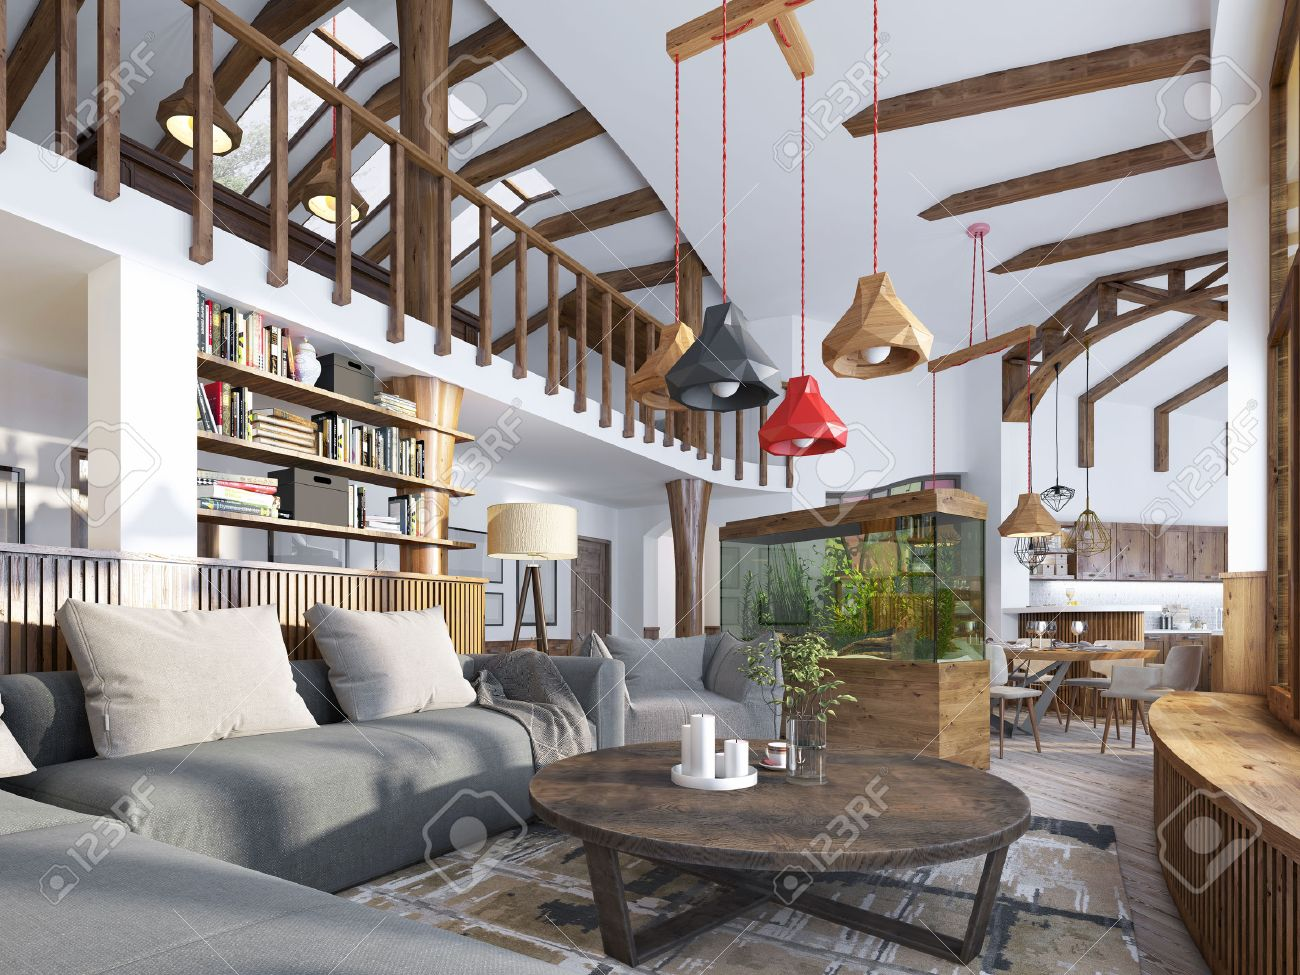 Interior living room loft style maisonette a modern living room with a billiard room